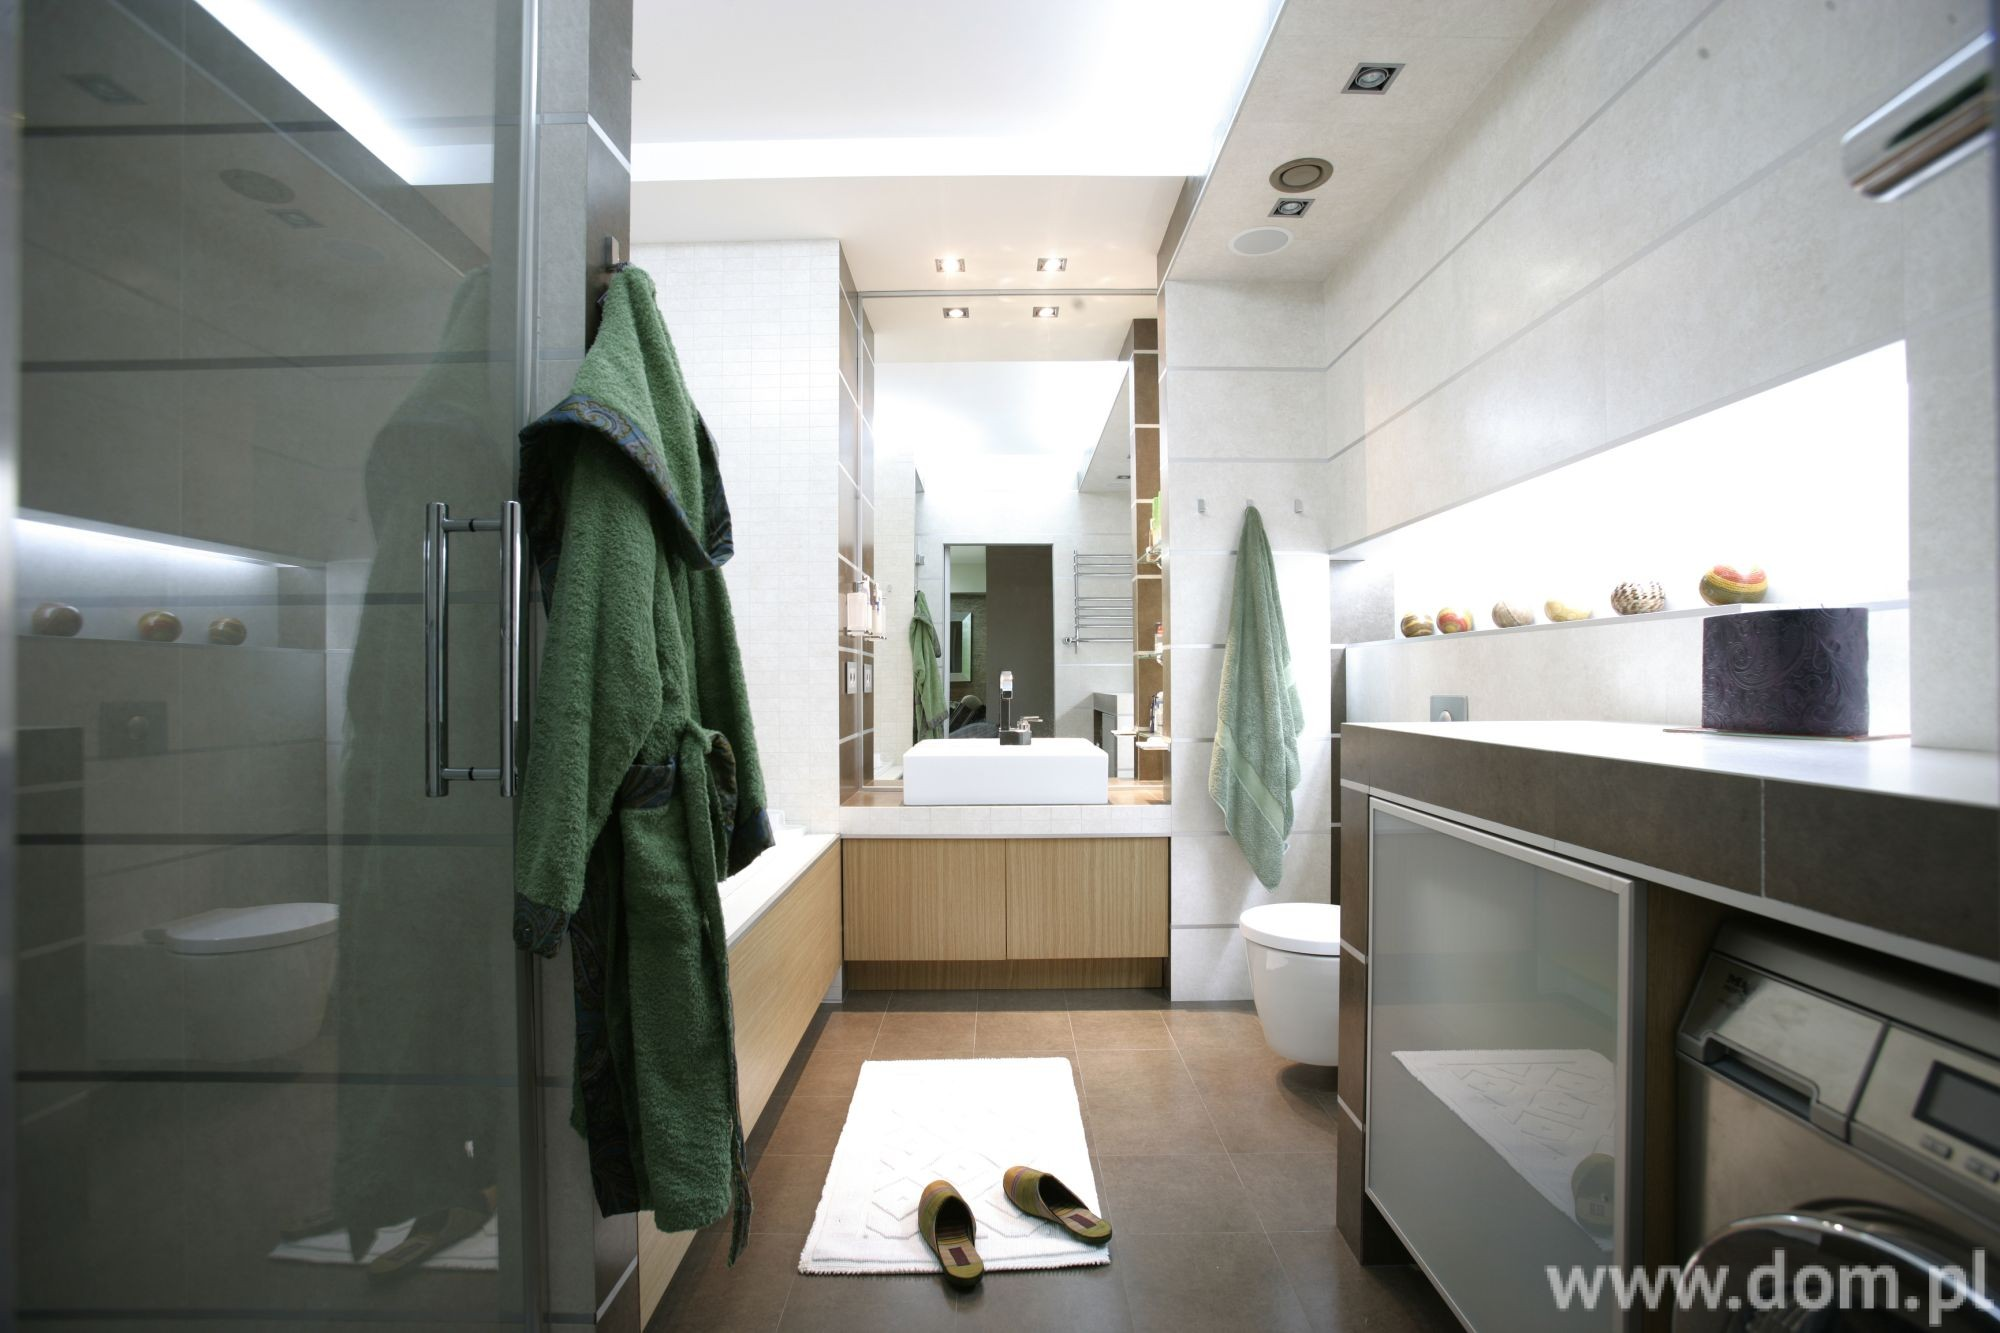 http://www.dreamstime.com/royalty-free-stock-images-interior-bathroom-image14168829